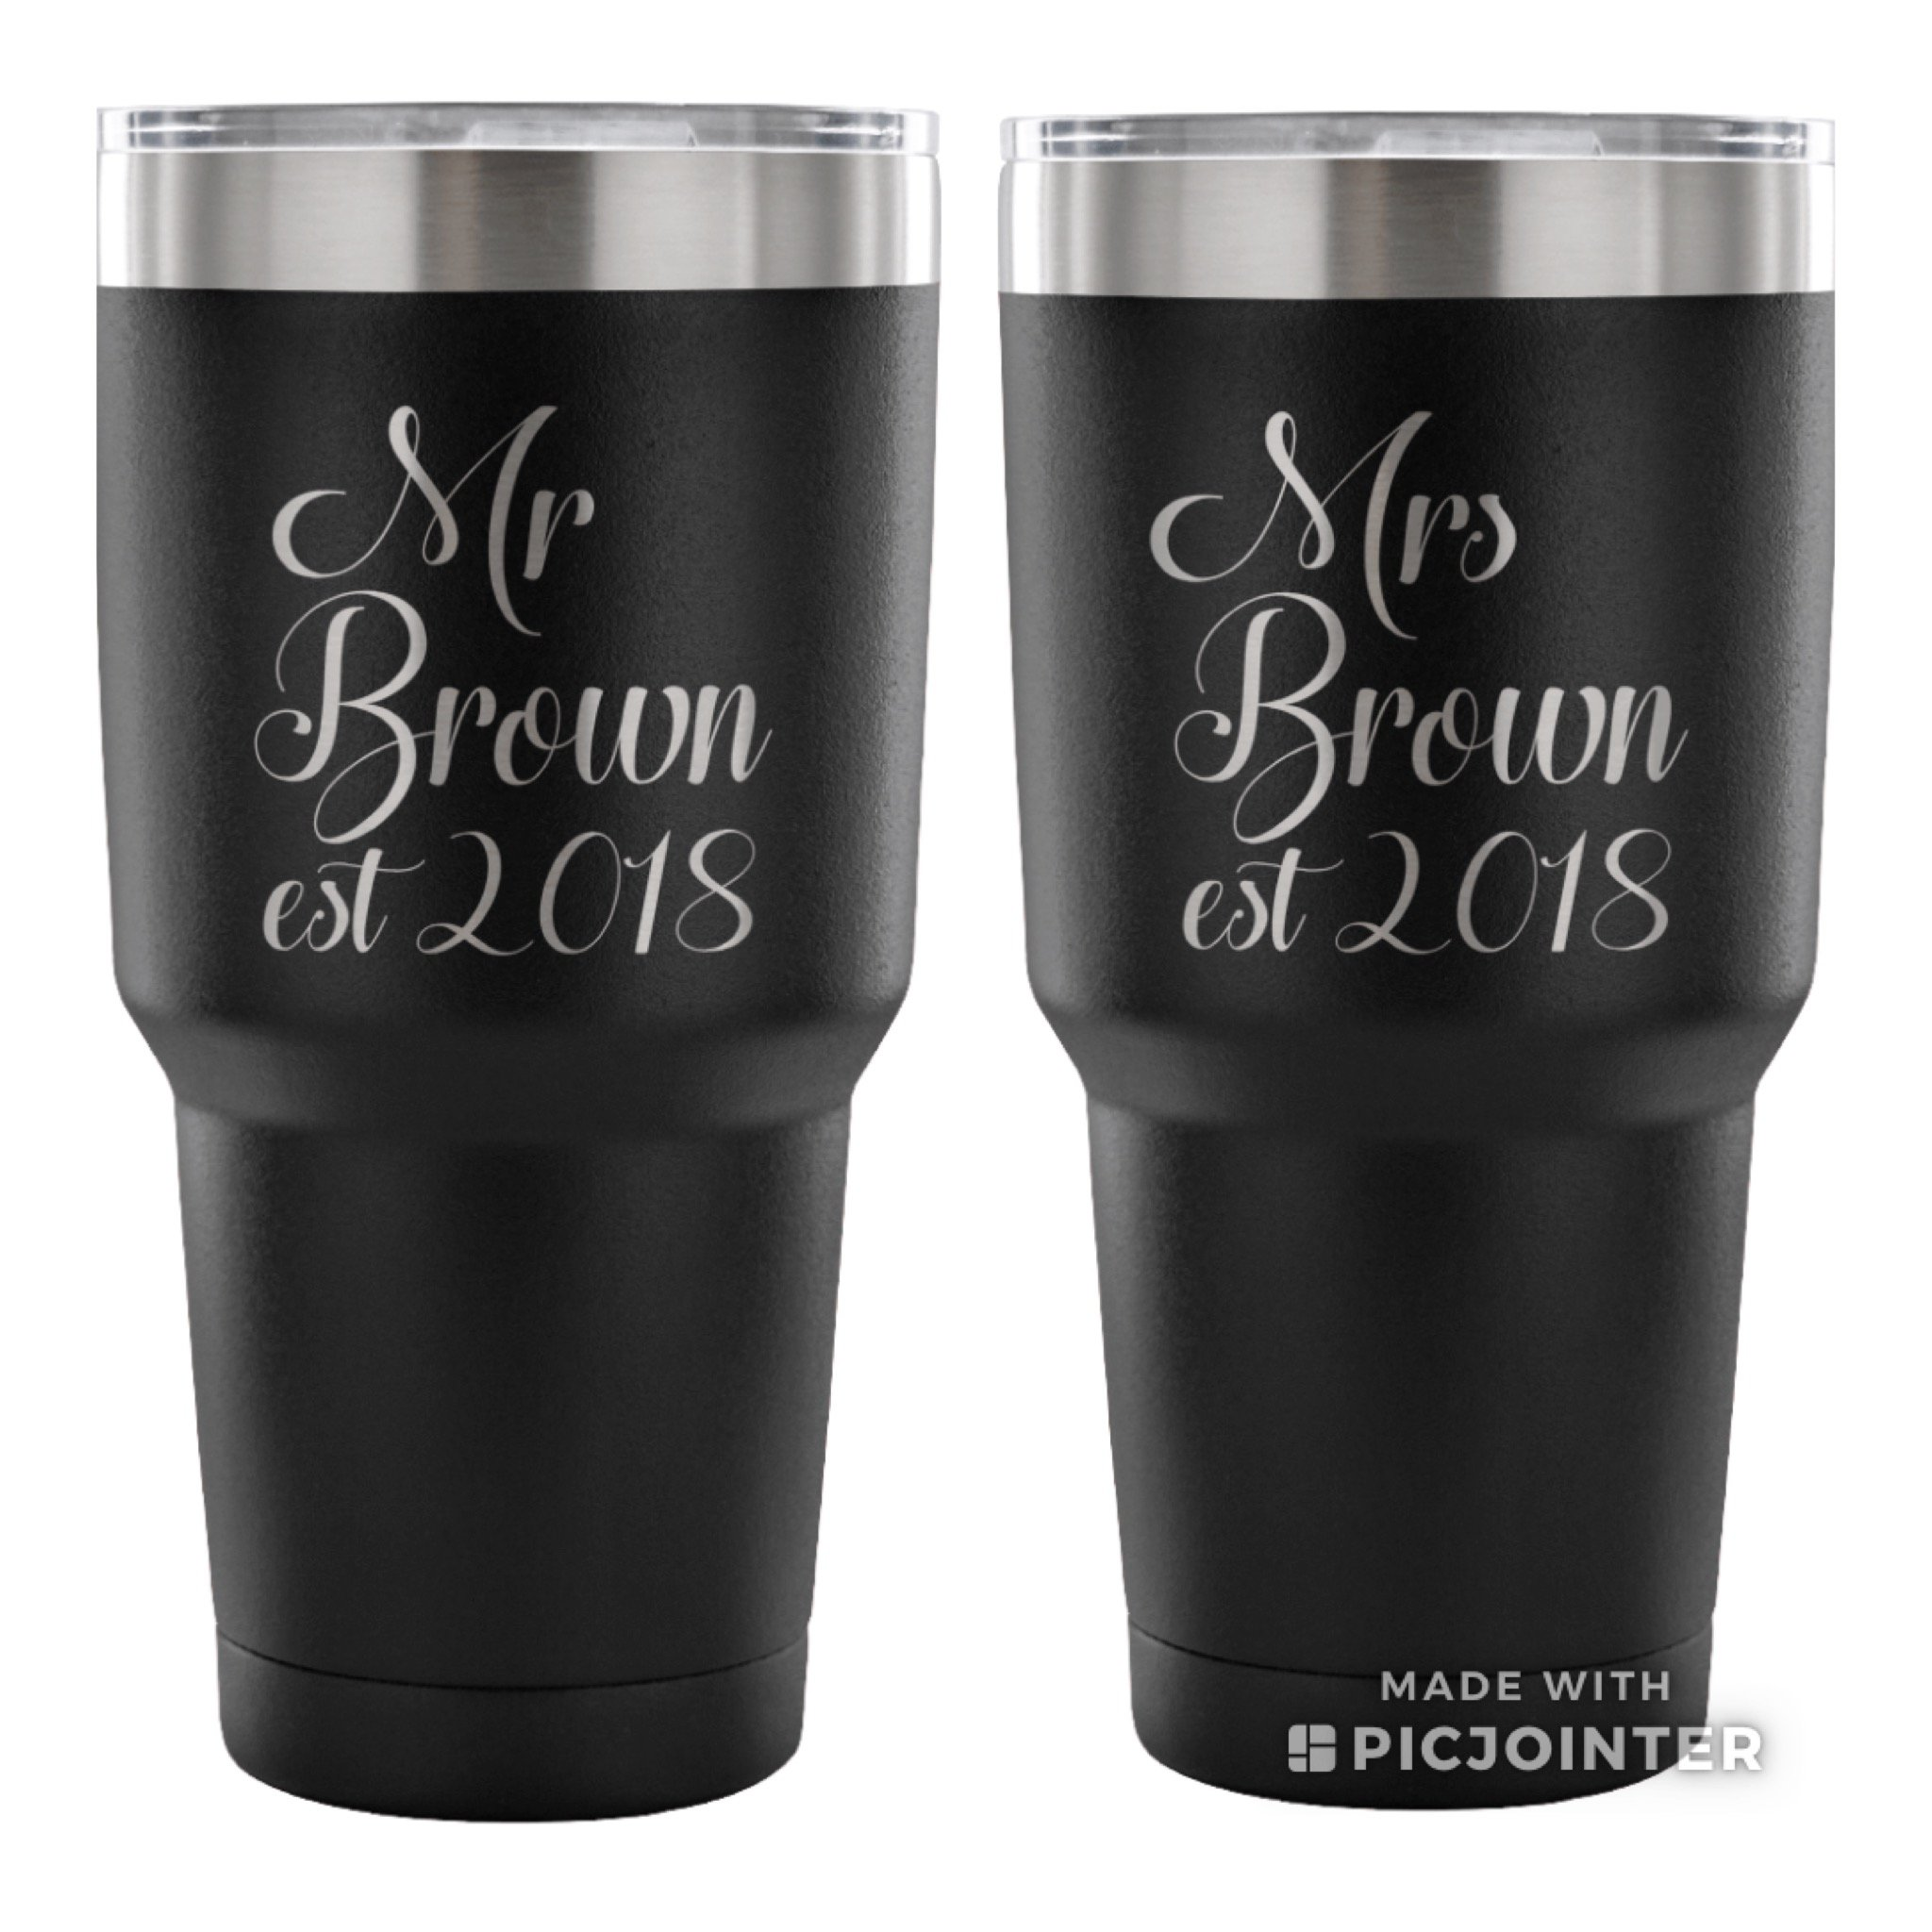 Customized Newly Wed Tumbler Gift - Wedding Gifts For Couple - Gifts For Anniversary - Mr Mrs Powder Coated Tumblers - Wedding Presents - Bridal Shower Gift